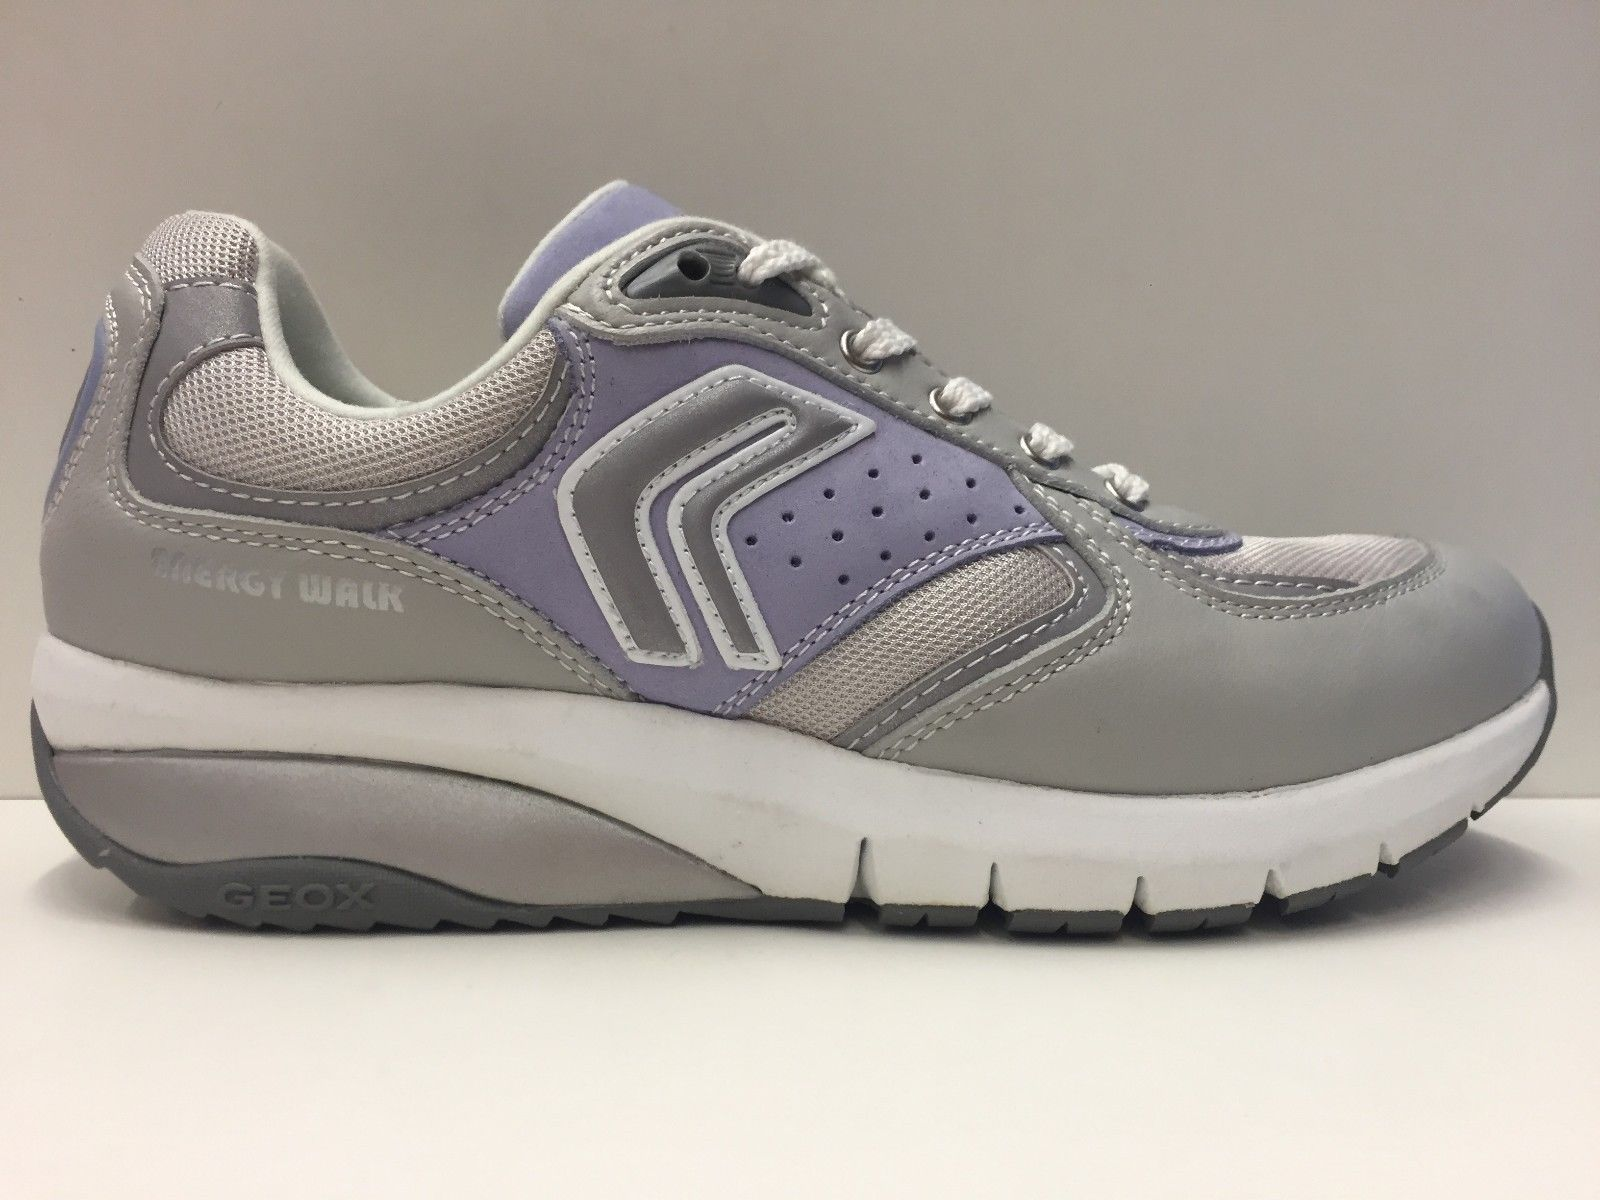 SCARPE CASUAL SNEAKERS DONNA GEOX ORIGINALE HYDEN D2215M SHOES PELLE GREY PE